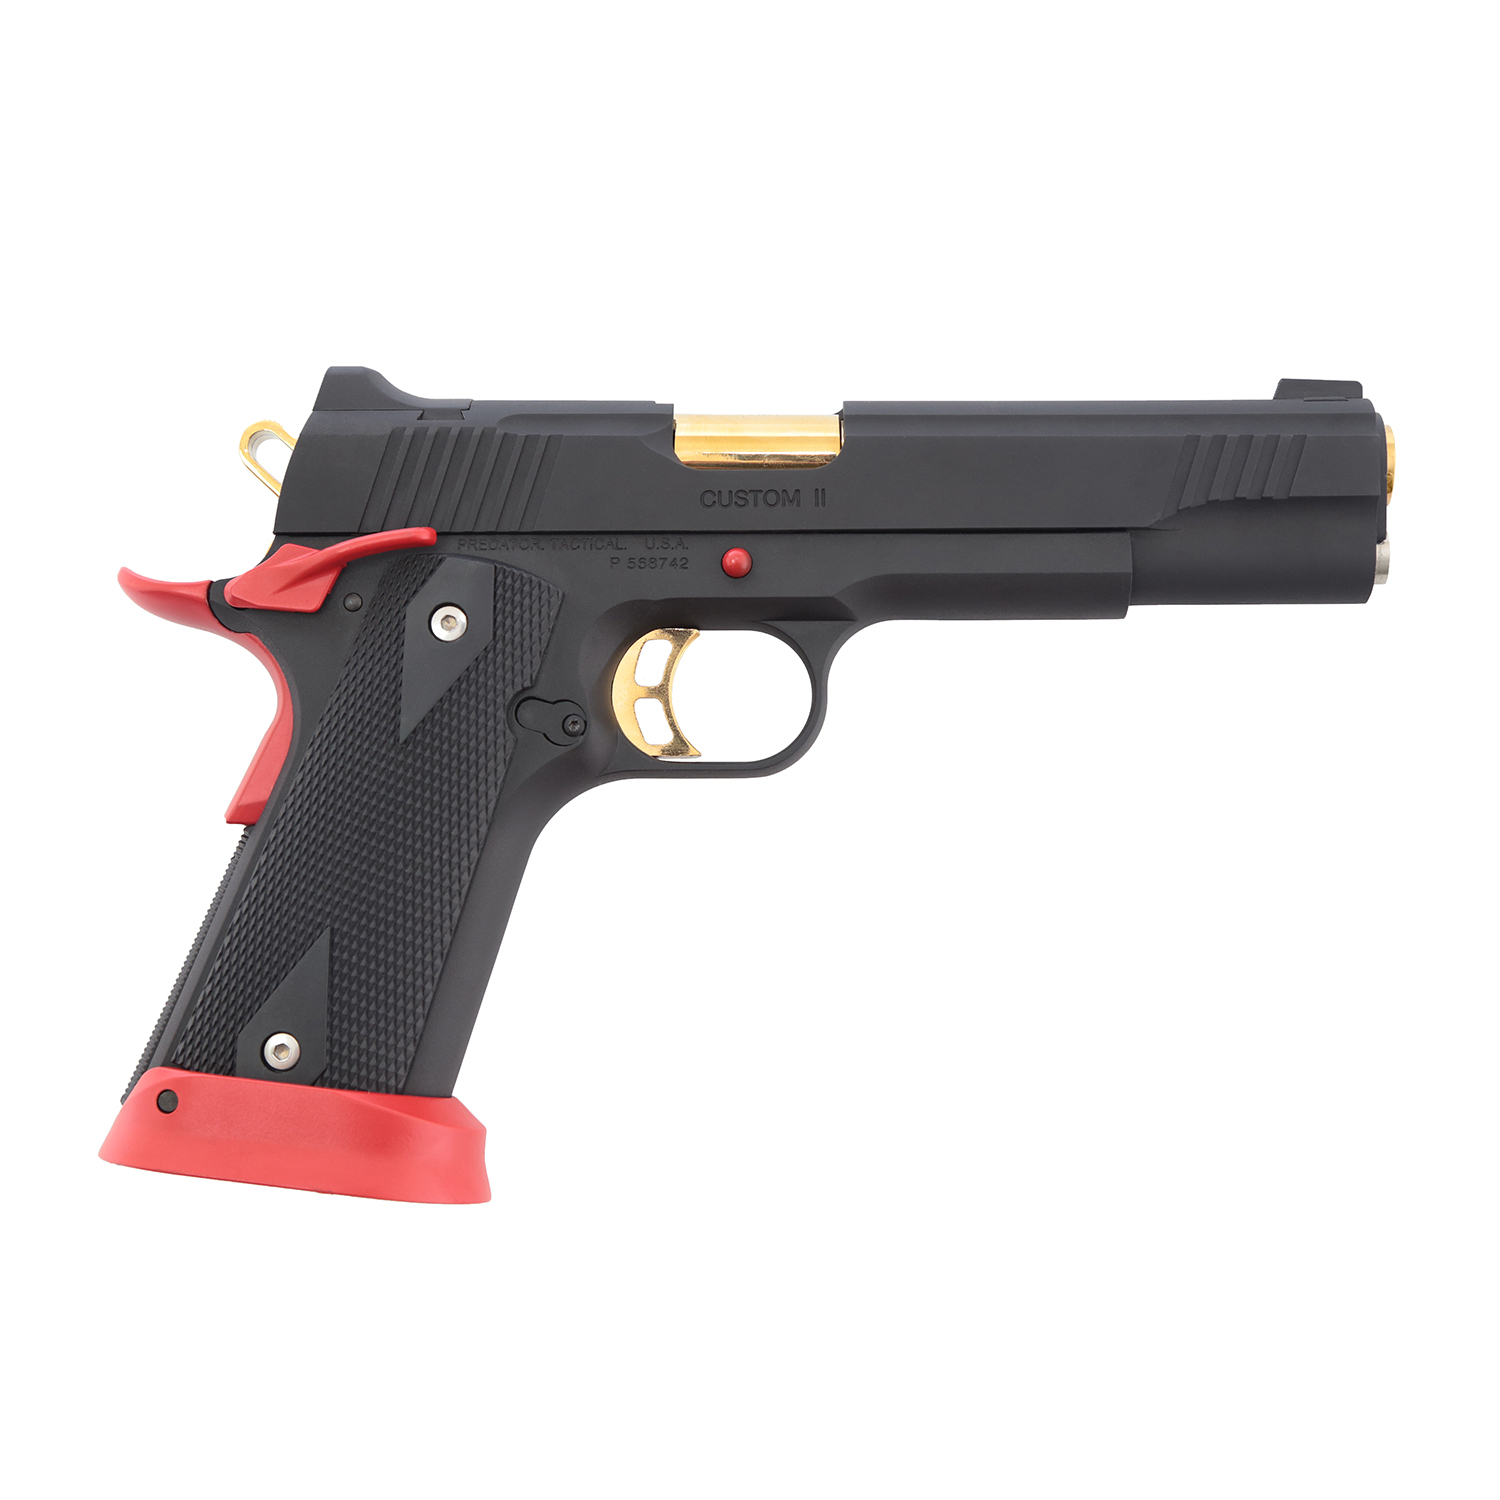 King Arms Predator Iron Shrike Full Metal GBB Pistol- Red & Gold